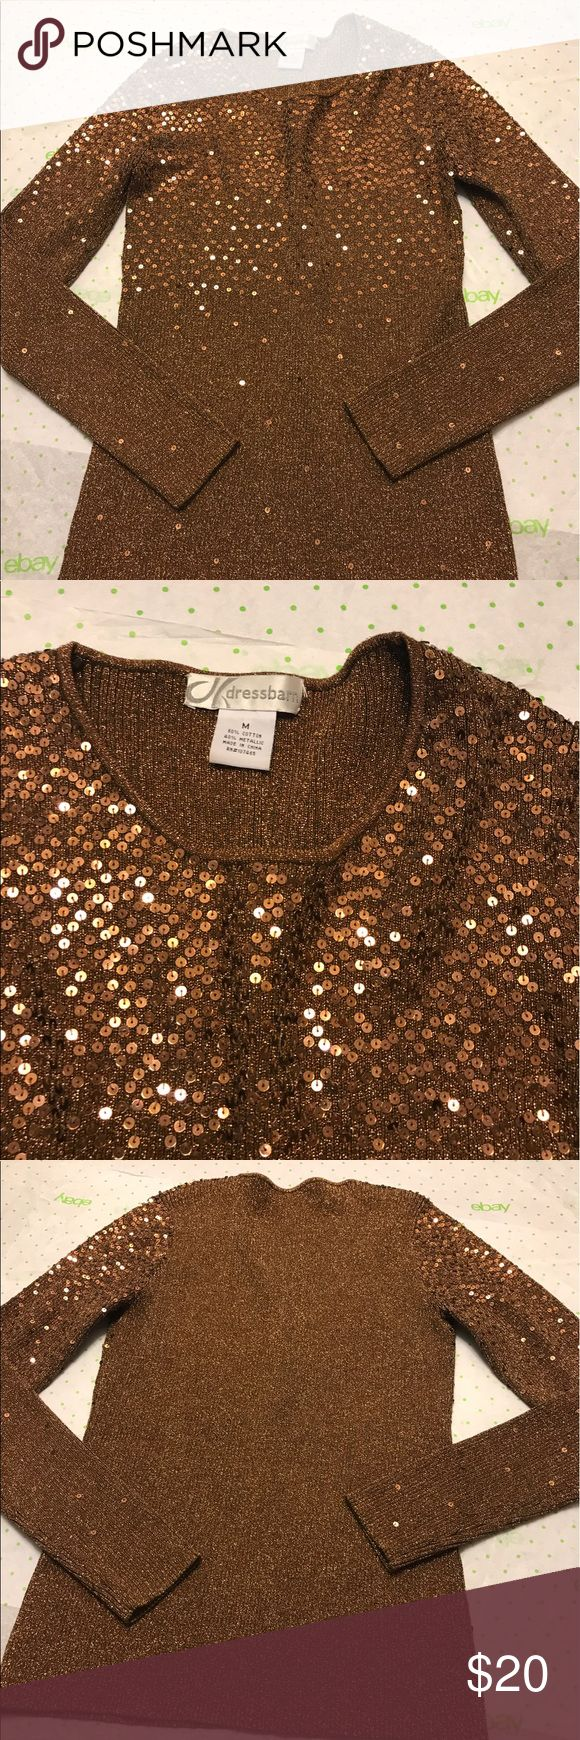 "Dressbarn Bronze Sequin long sleeve shirt Sz M NWOT Dressbarn Women's Bronze Sequin Cotton Metallic Shirt Size Medium New  New without tags 60% cotton 40% Metallic Stretchy Pit to pit 15"" Waist 13"" across Sleeves 26"" collar to end Length 23"" Dress Barn Tops"